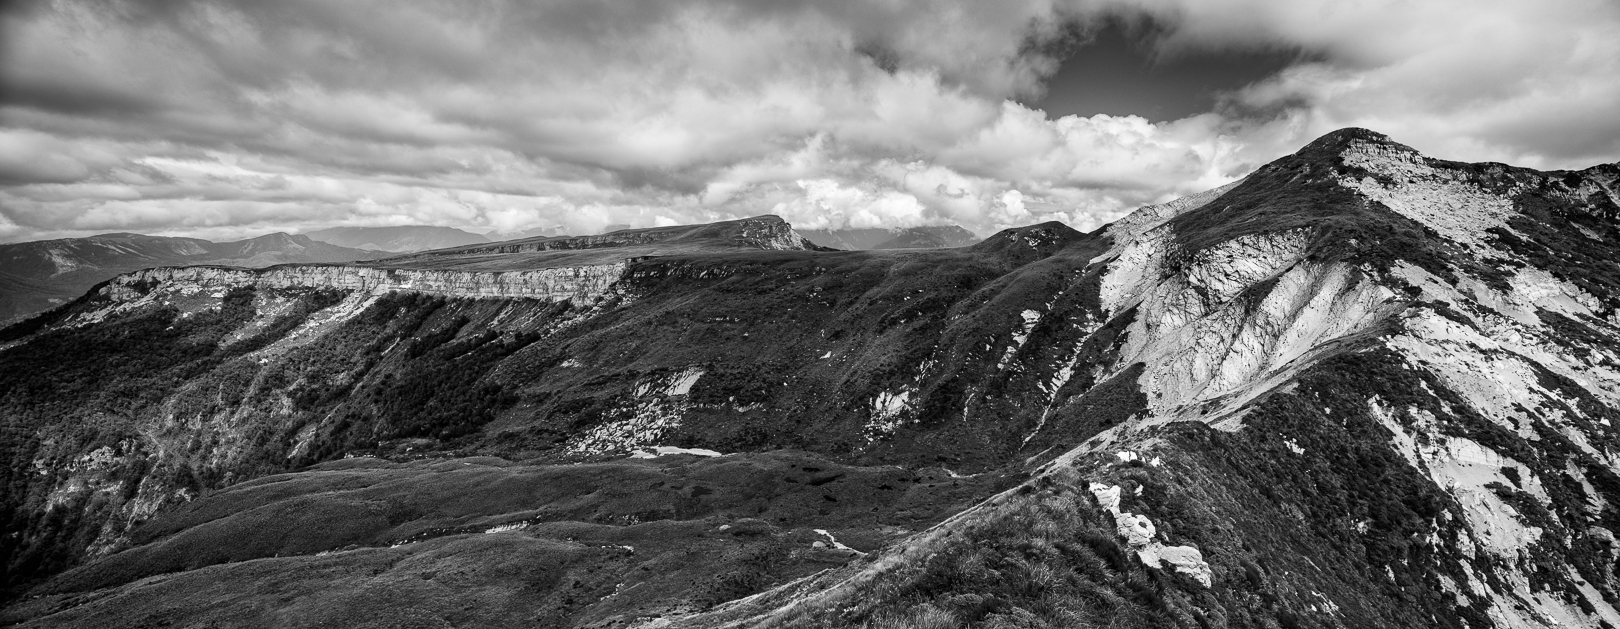 The Devil's Dining Table and the Needle, shot from the ridgeline between the Needle and Haystack.